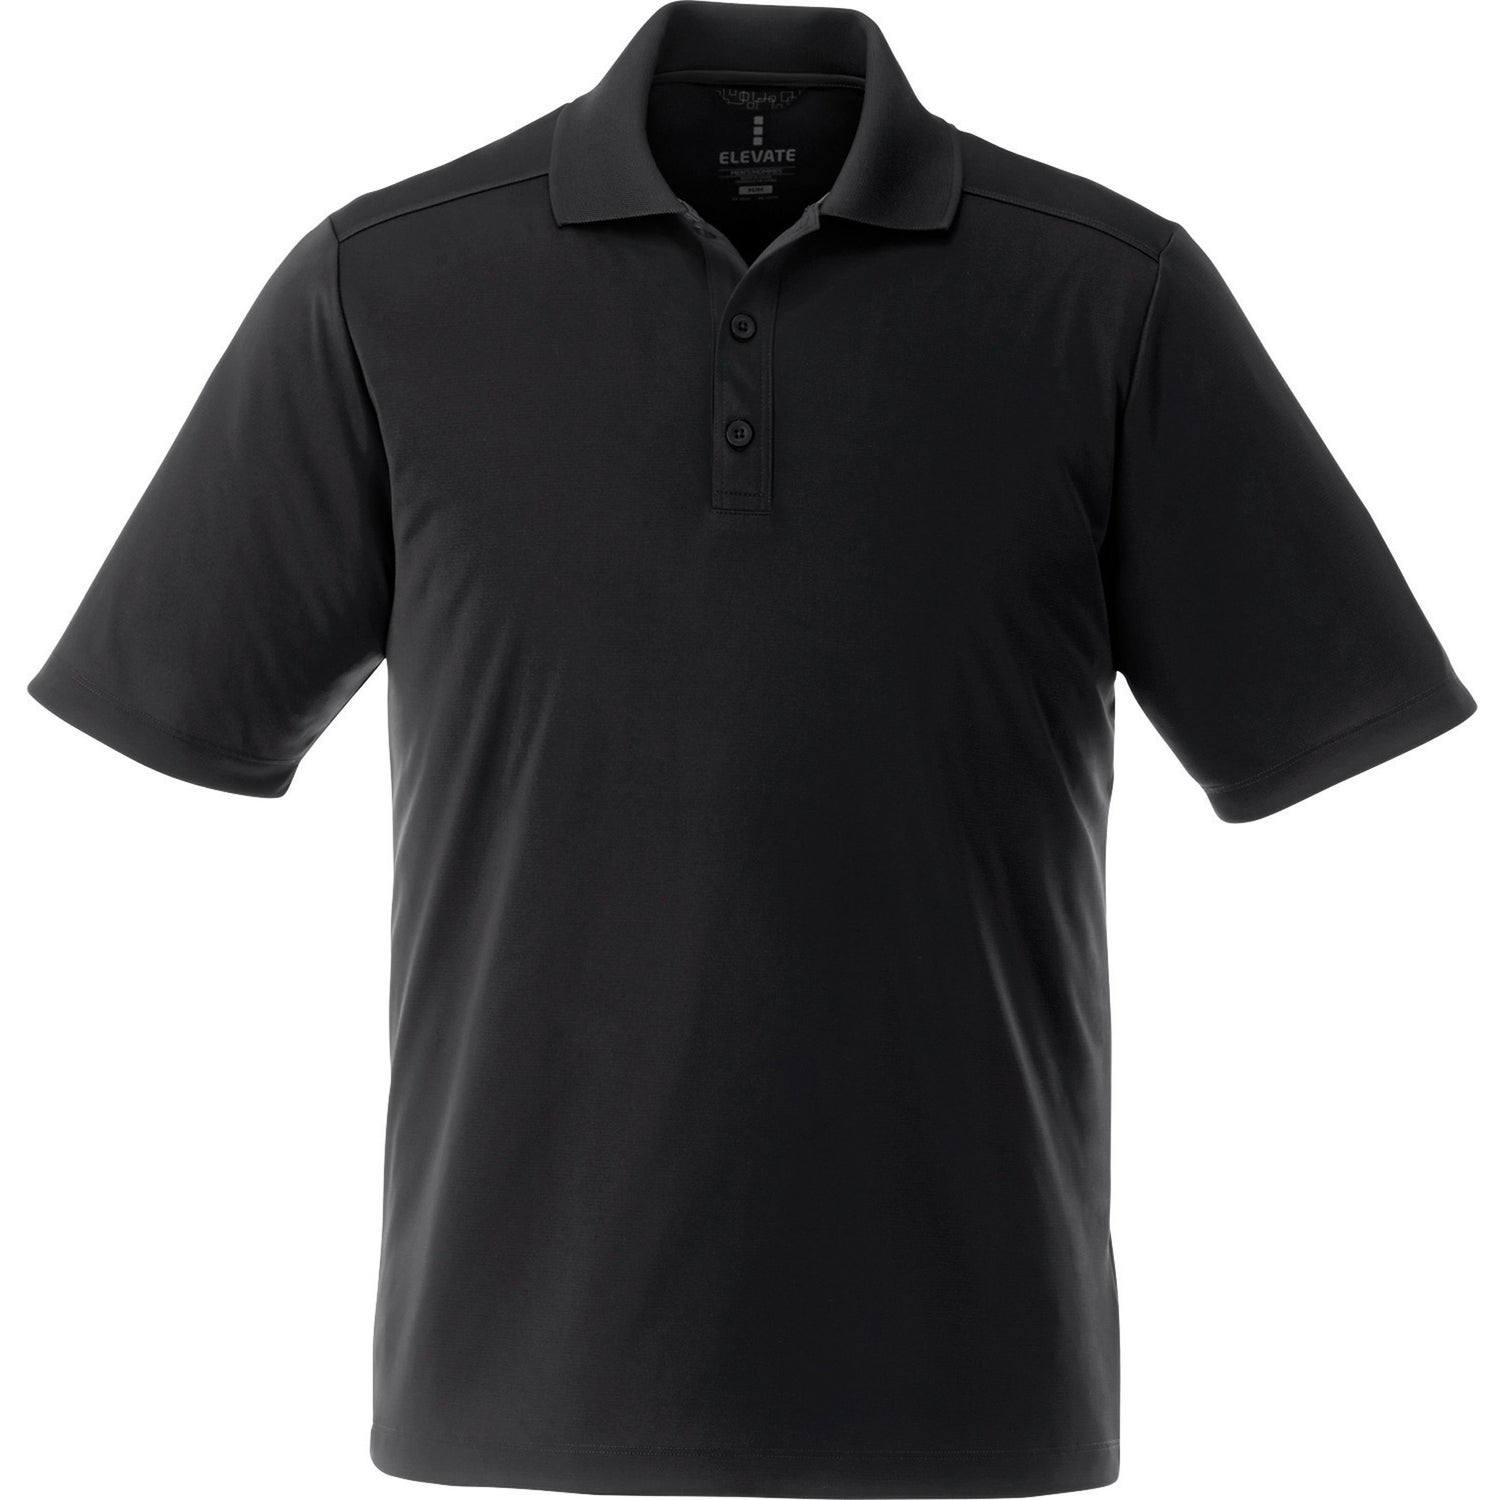 Dade short sleeve polo shirt by trimark men 39 s for Quality polo shirts with company logo